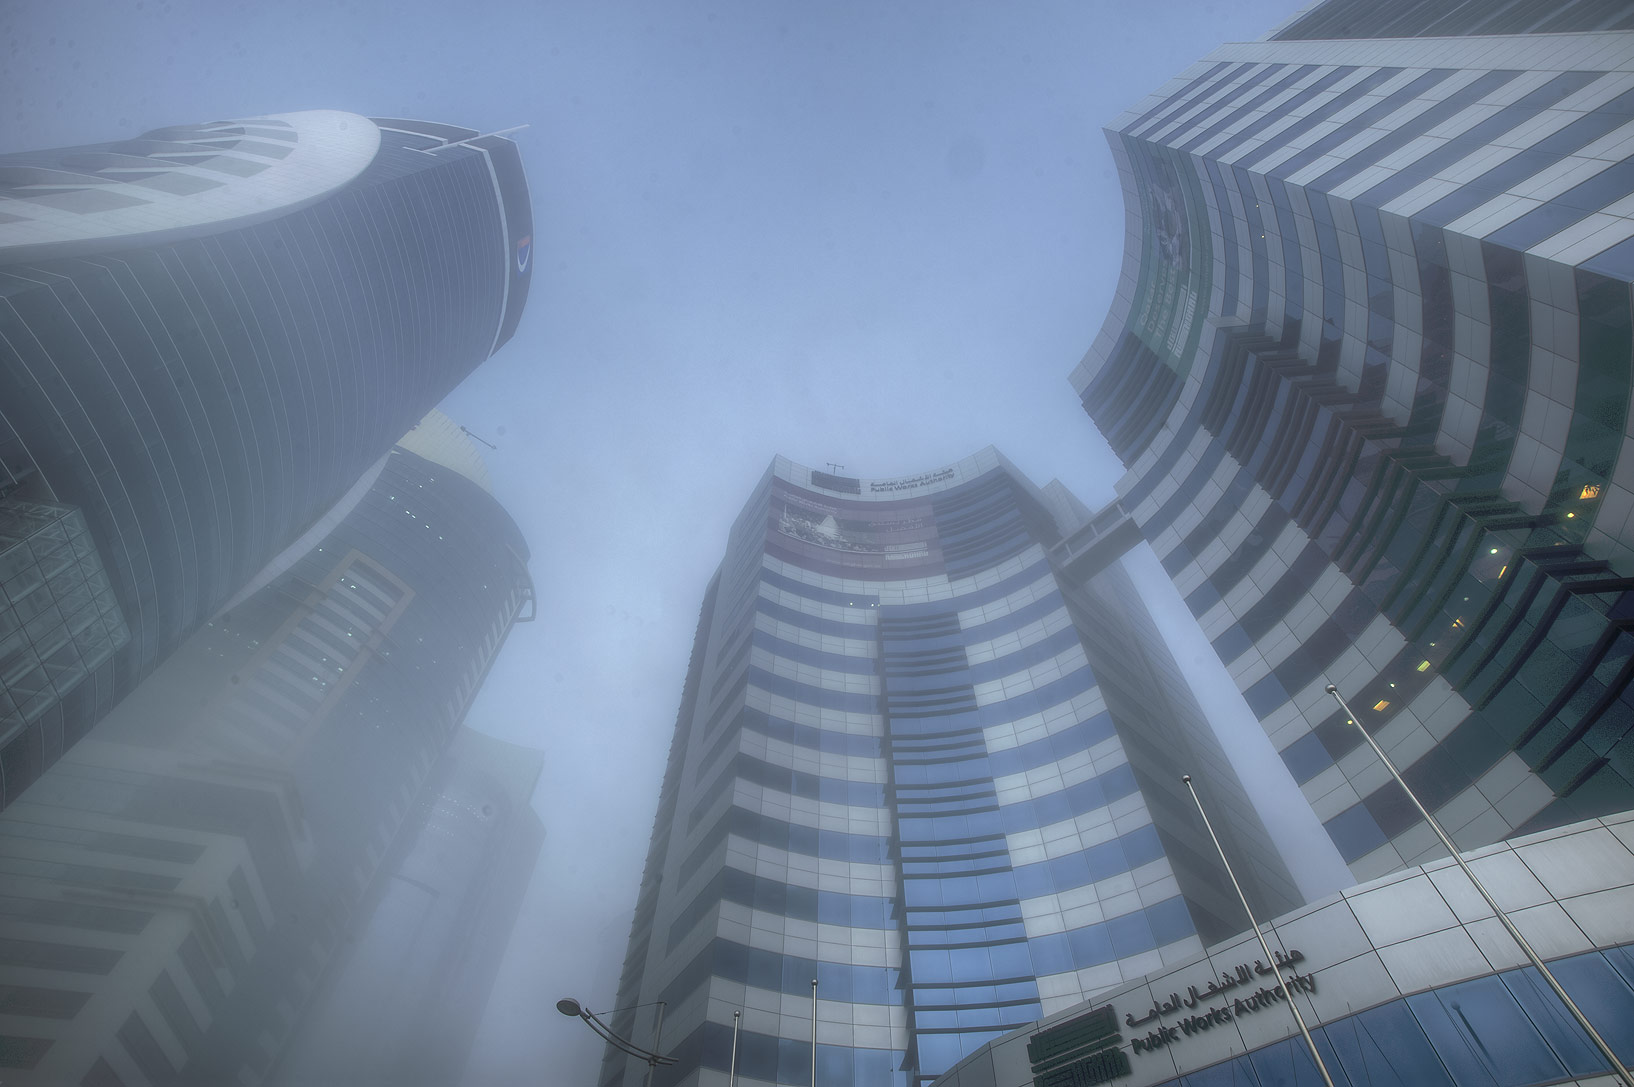 Public Works Authority in West Bay in fog, looking up. Doha, Qatar